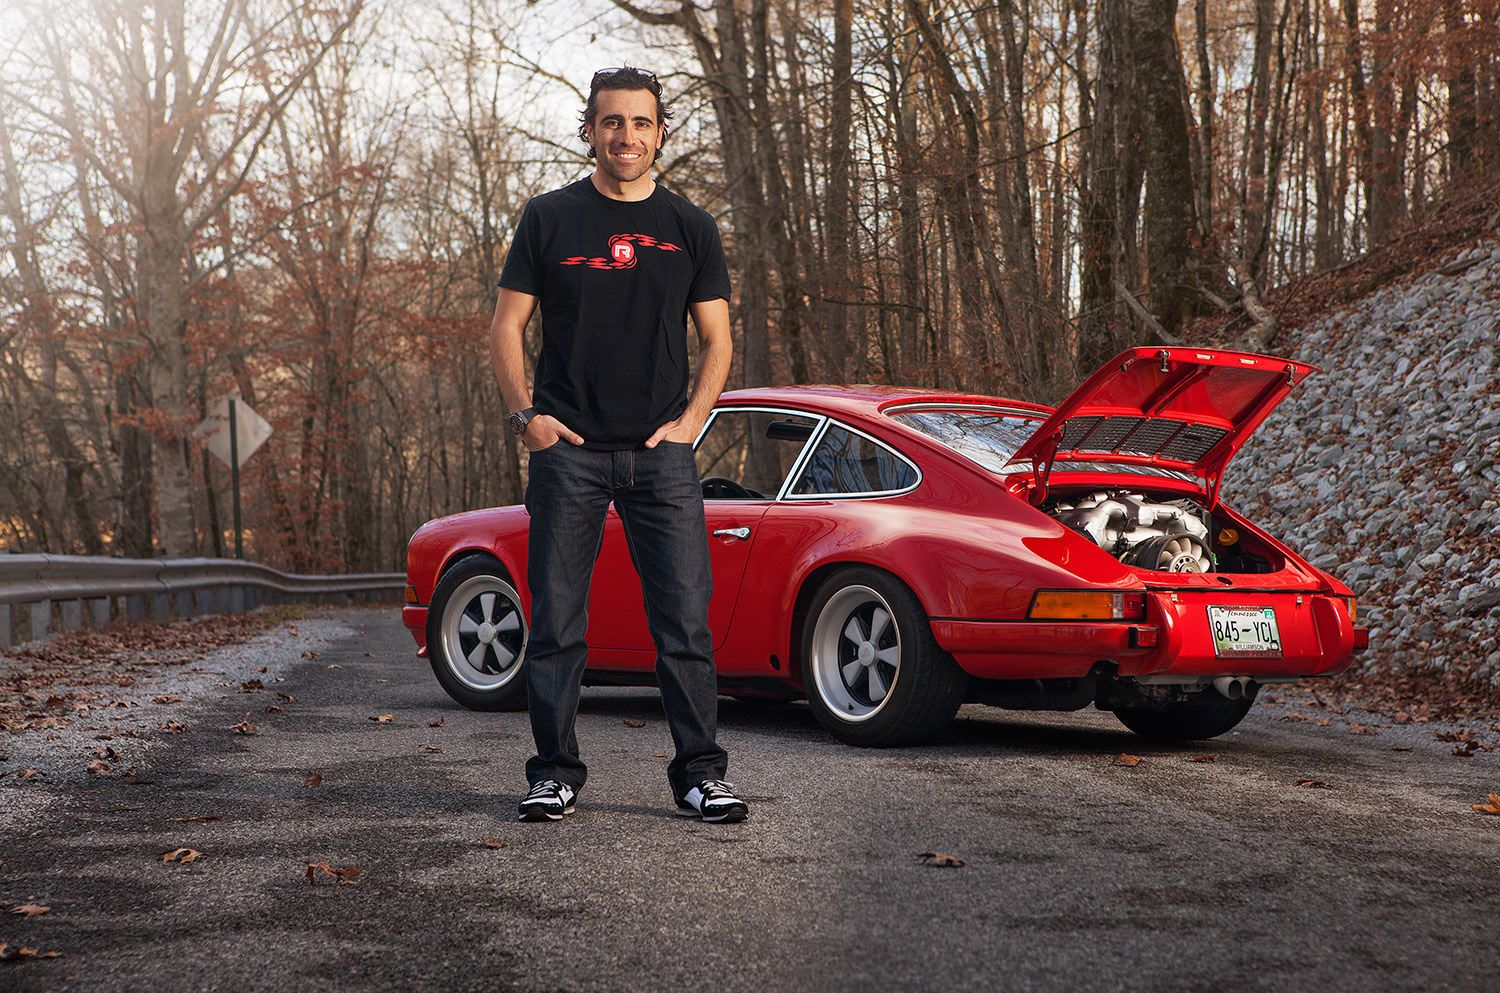 A day with champion racecar driver Dario at his remote countryside residence in Tennessee for a feature in Panorama magazine.